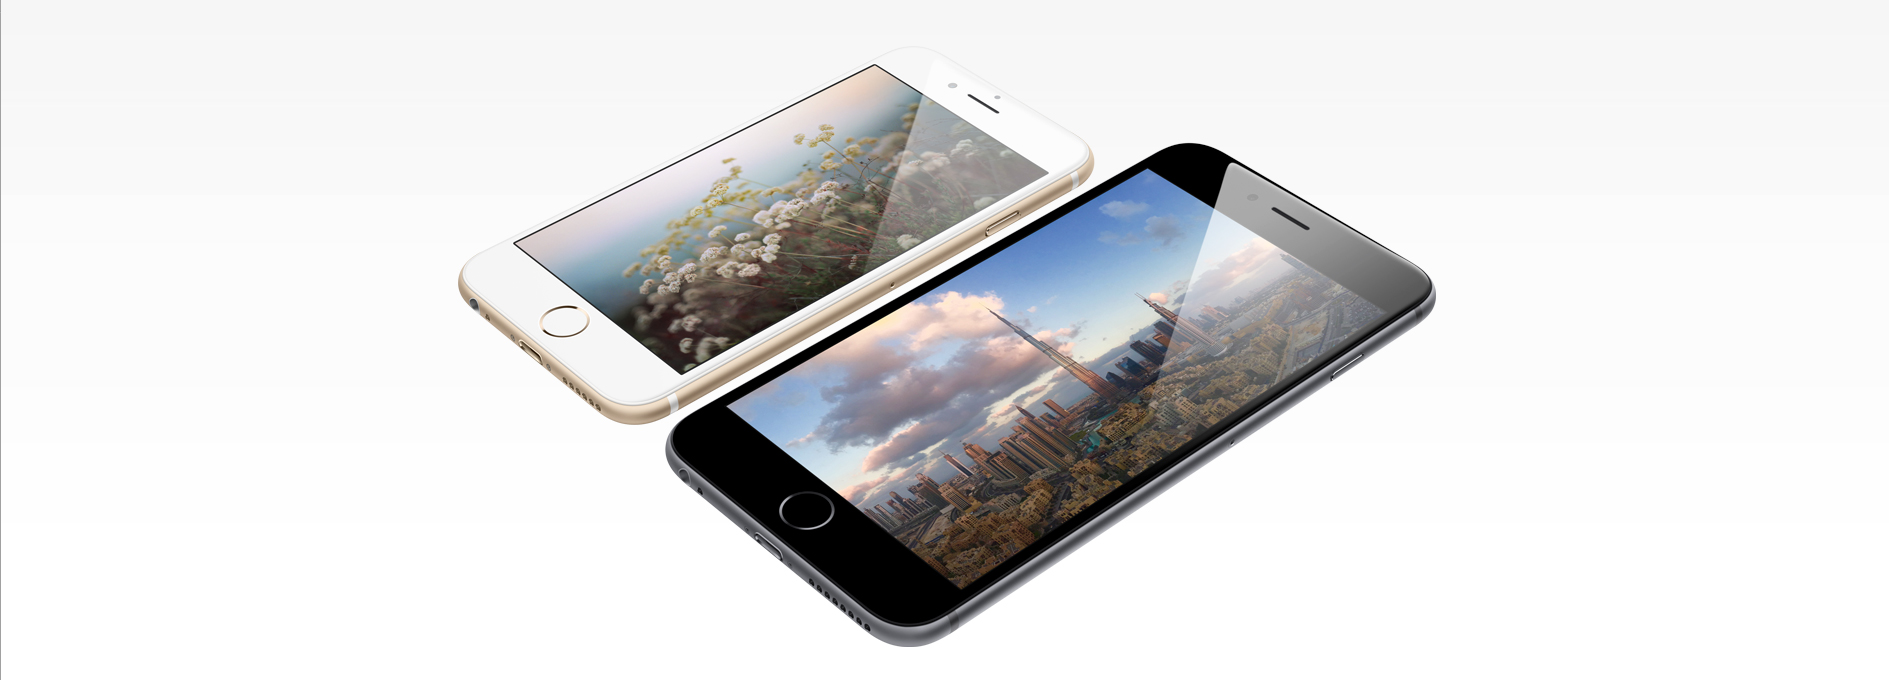 Yes, Apple will still be selling a 16GB version of the 'iPhone 6s'